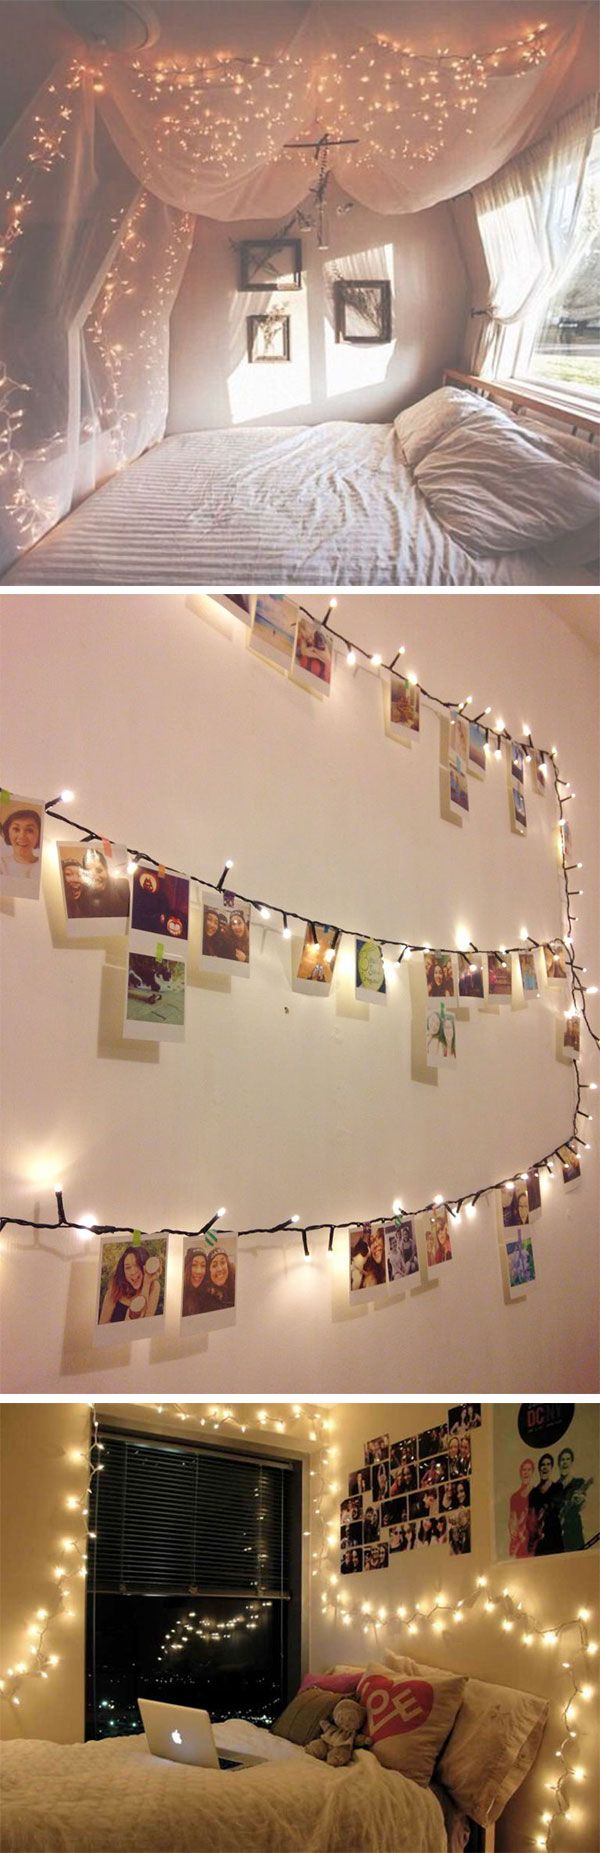 13 ways to use fairy lights to make your bedroom look magical - Decorating Room Ideas